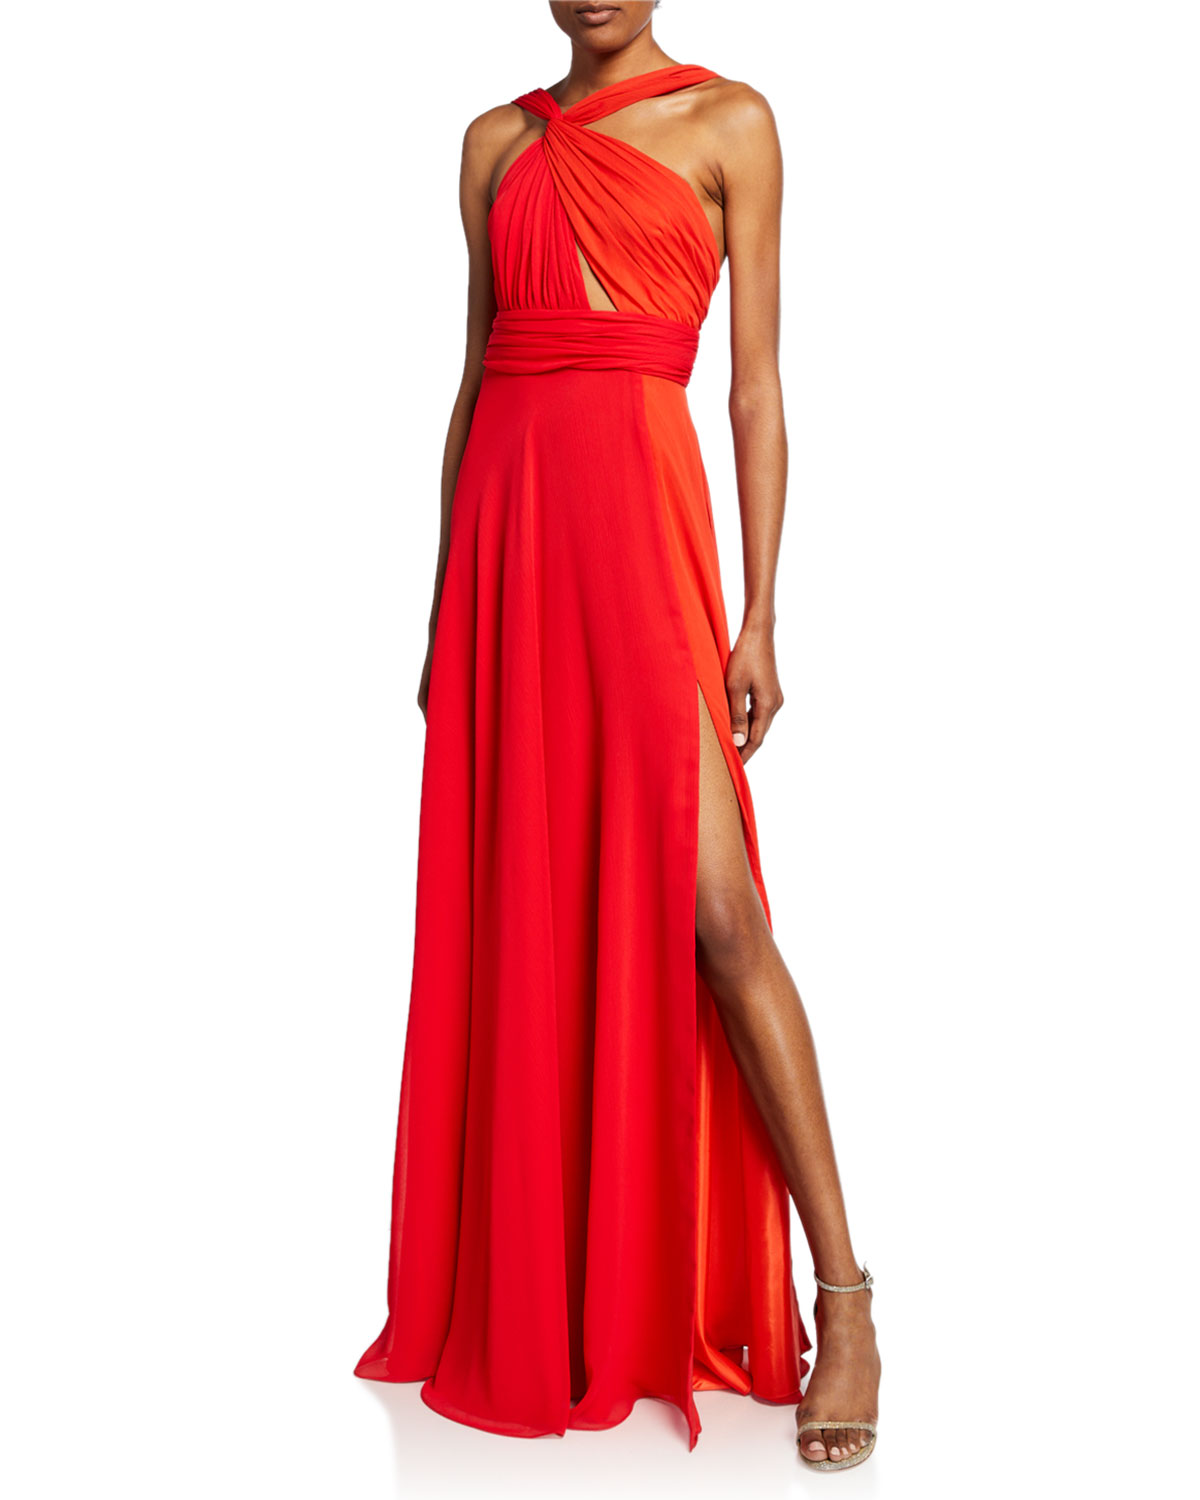 Jill Jill Stuart Tops TWO-TONE HALTER GOWN WITH THIGH SLIT